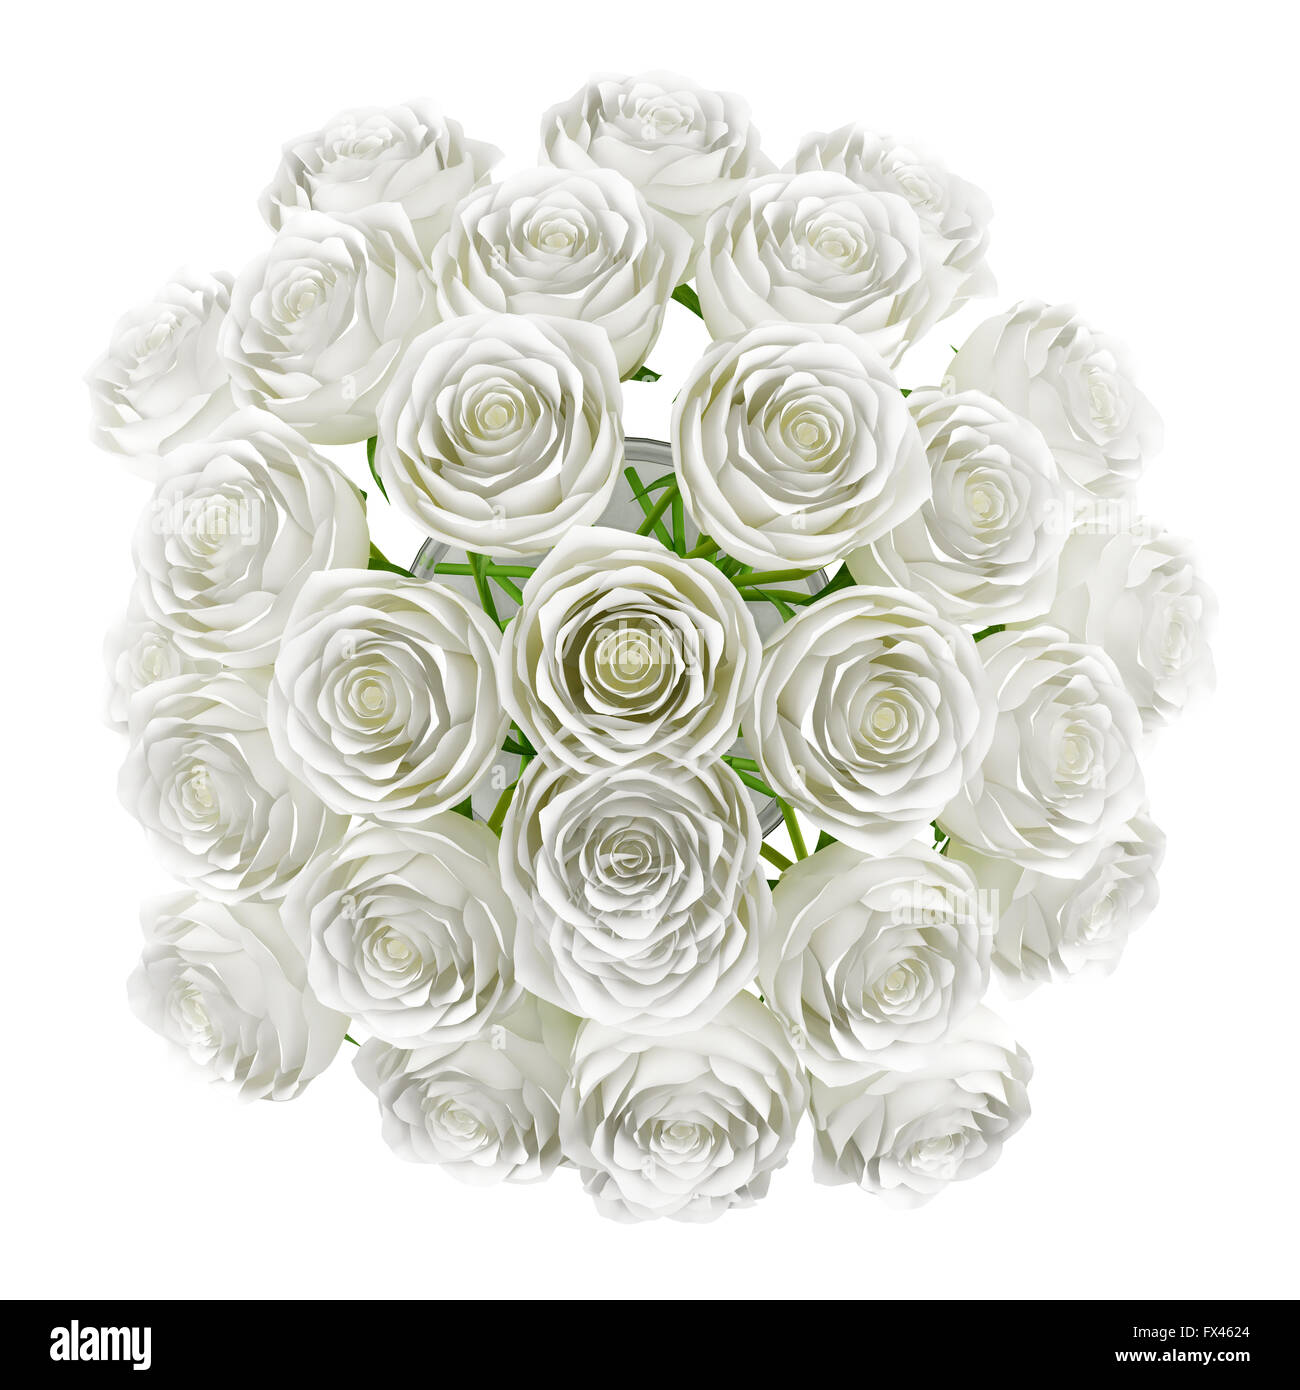 Top view of roses in glass vase isolated on white background stock top view of roses in glass vase isolated on white background reviewsmspy